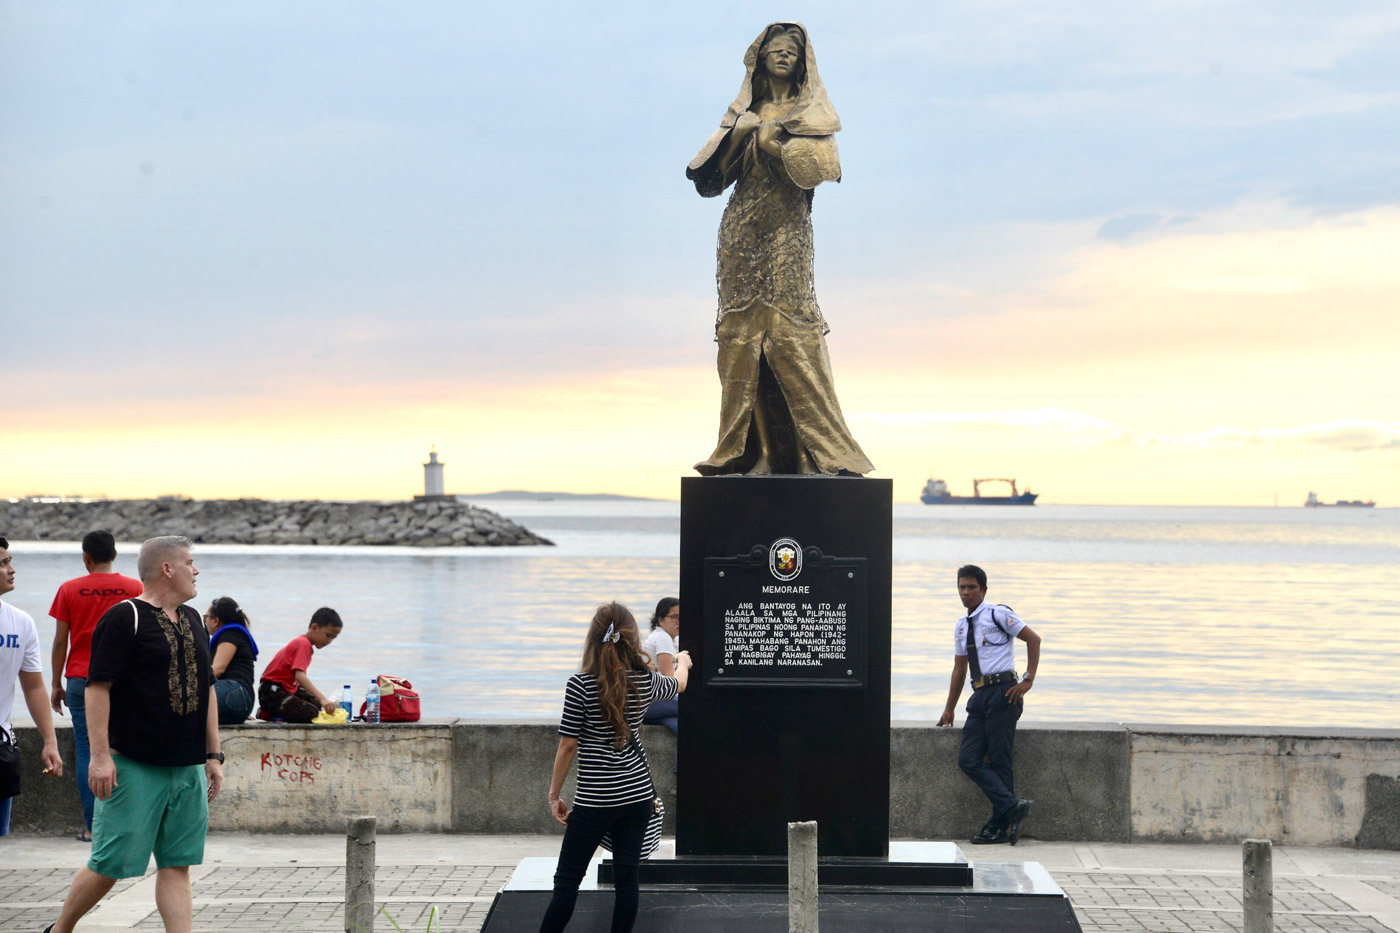 CONTROVERSIAL STATUE. This statue of a comfort woman along Roxas Boulevard has generated controversy since it was inaugurated on December 8, 2017. Photo by Angie de Silva/Rappler